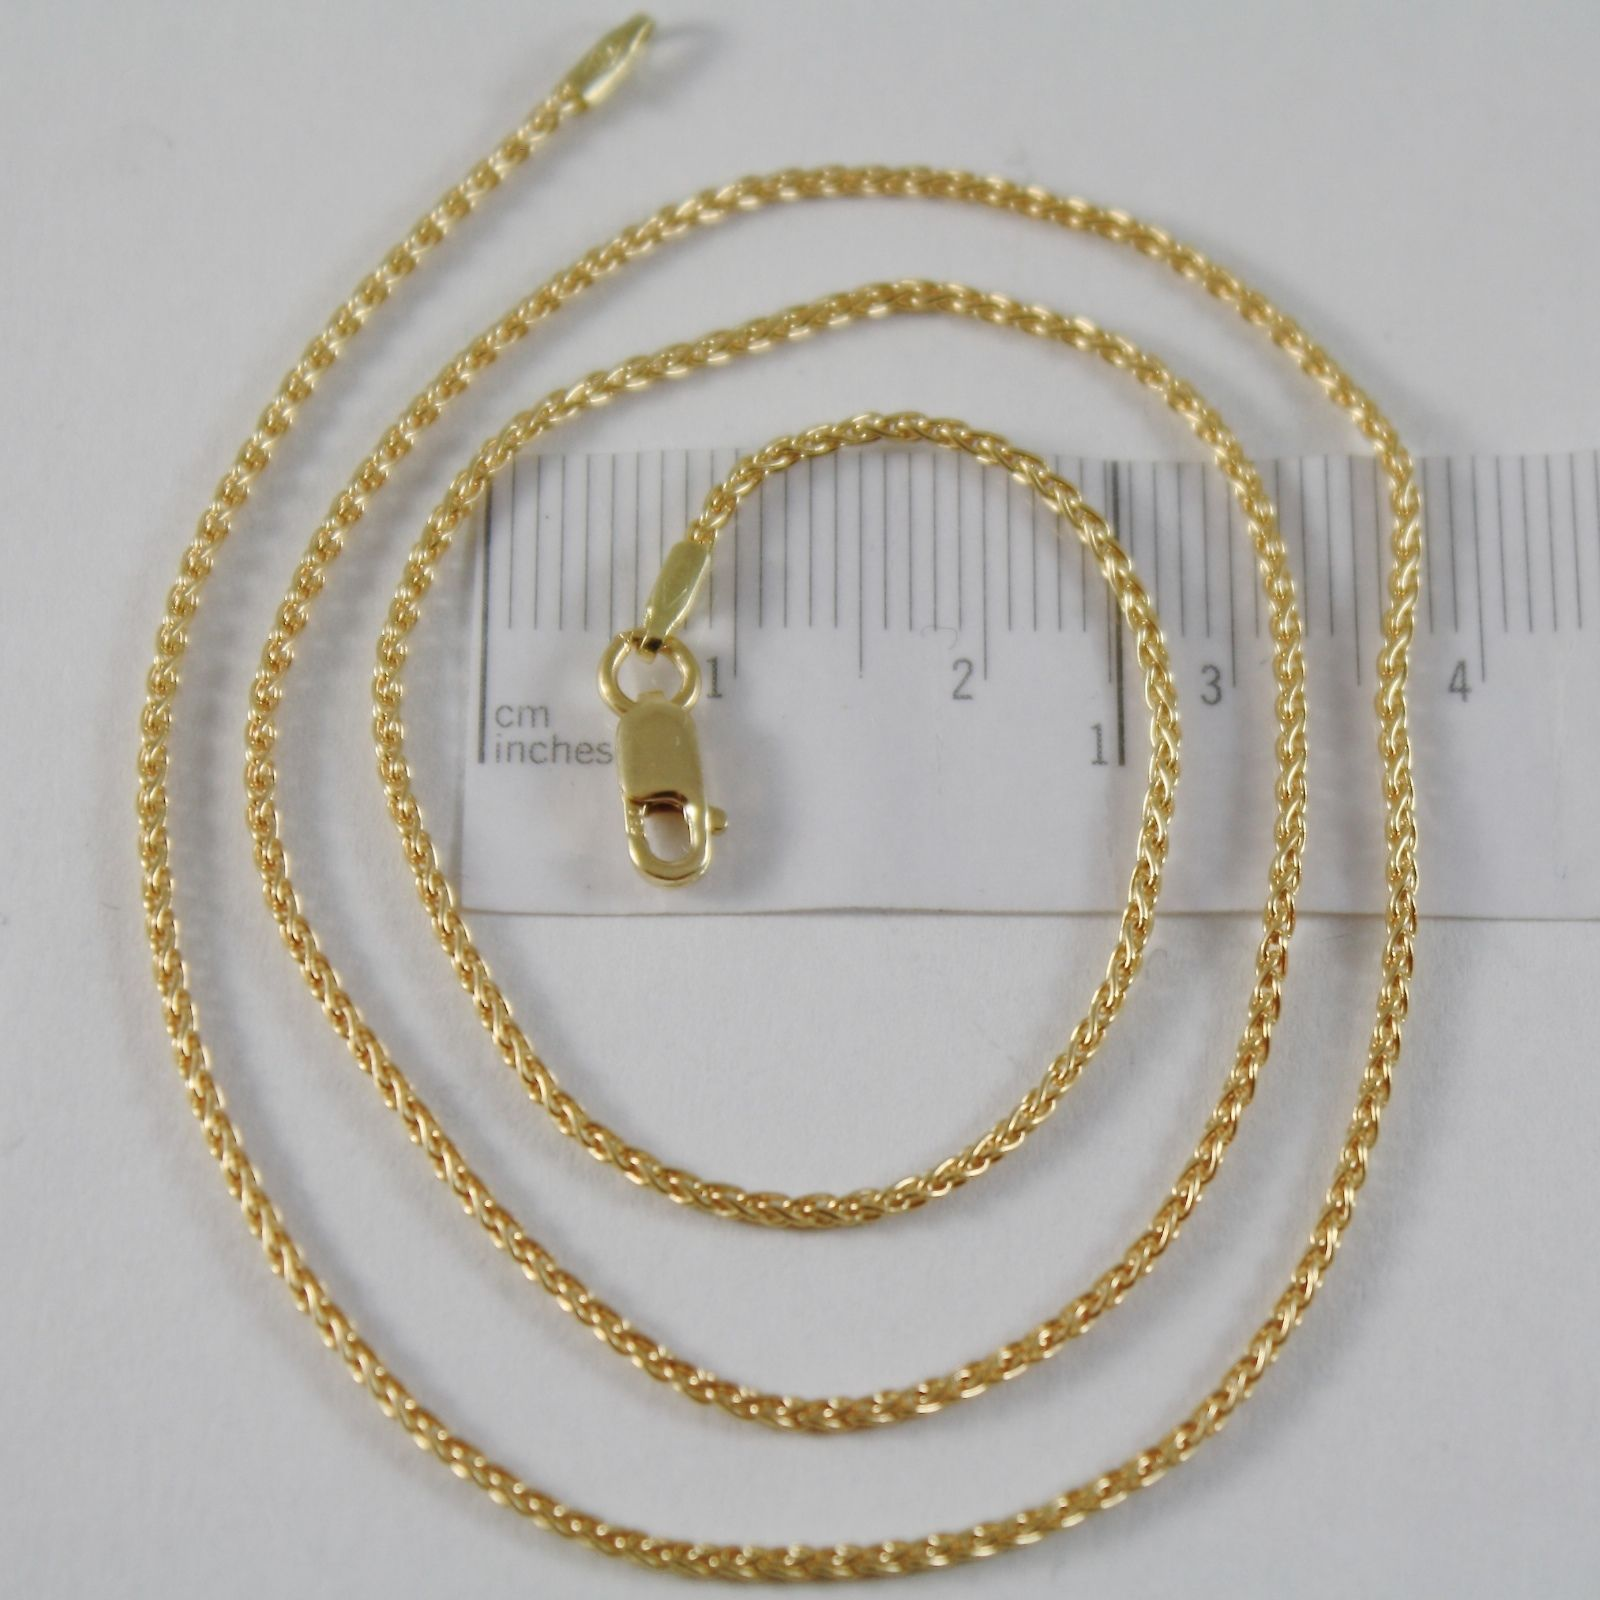 SOLID 18K YELLOW GOLD SPIGA WHEAT EAR CHAIN 24 INCHES, 1.5 MM, MADE IN ITALY